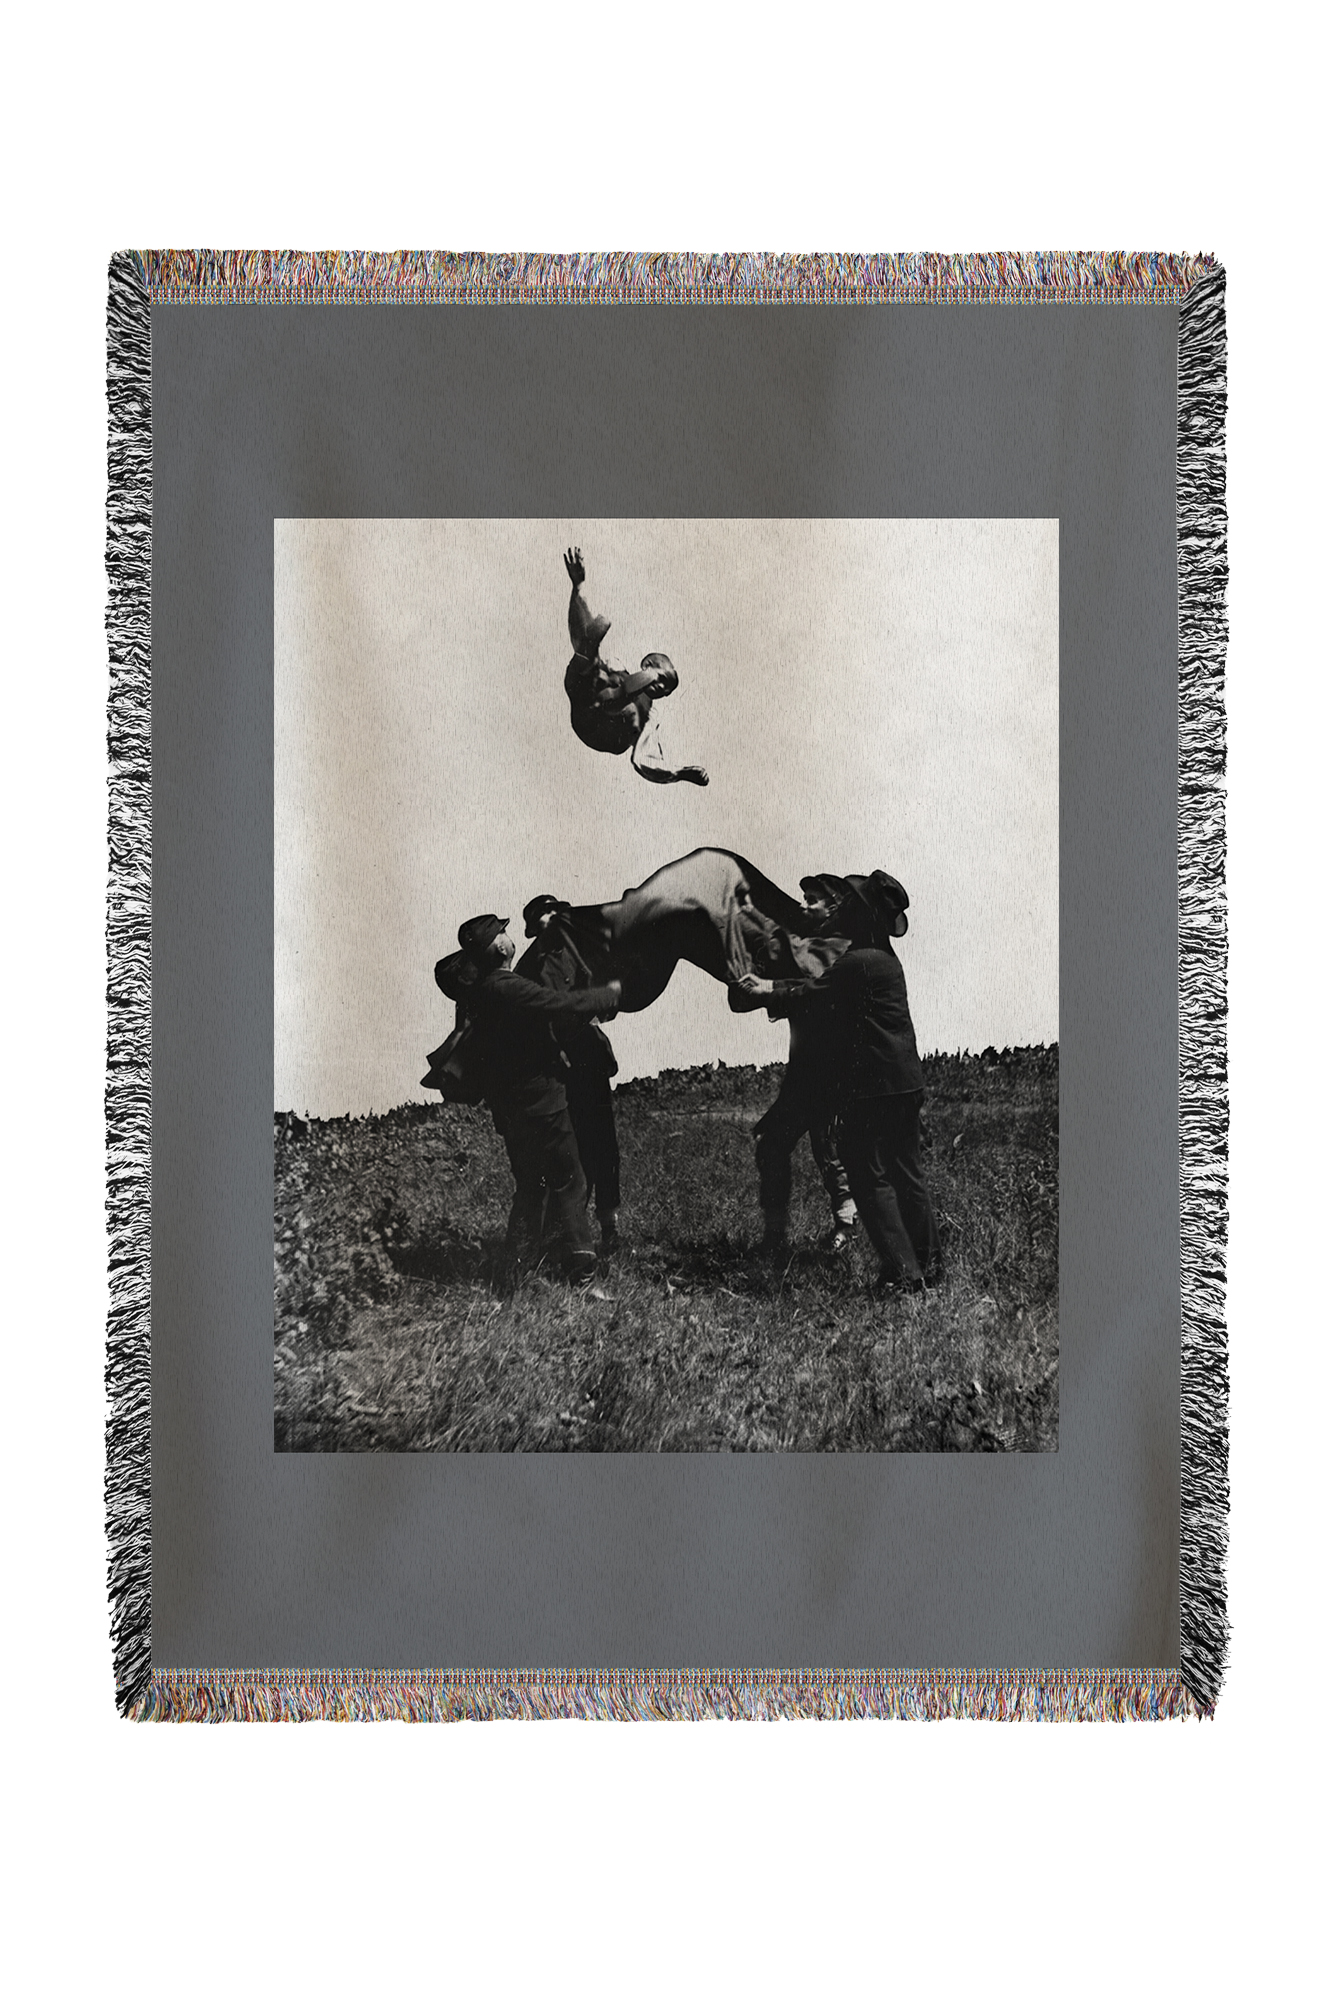 Blanket Toss by Soldiers Civil War Photograph (60x80 Woven Chenille Yarn Blanket) by Lantern Press